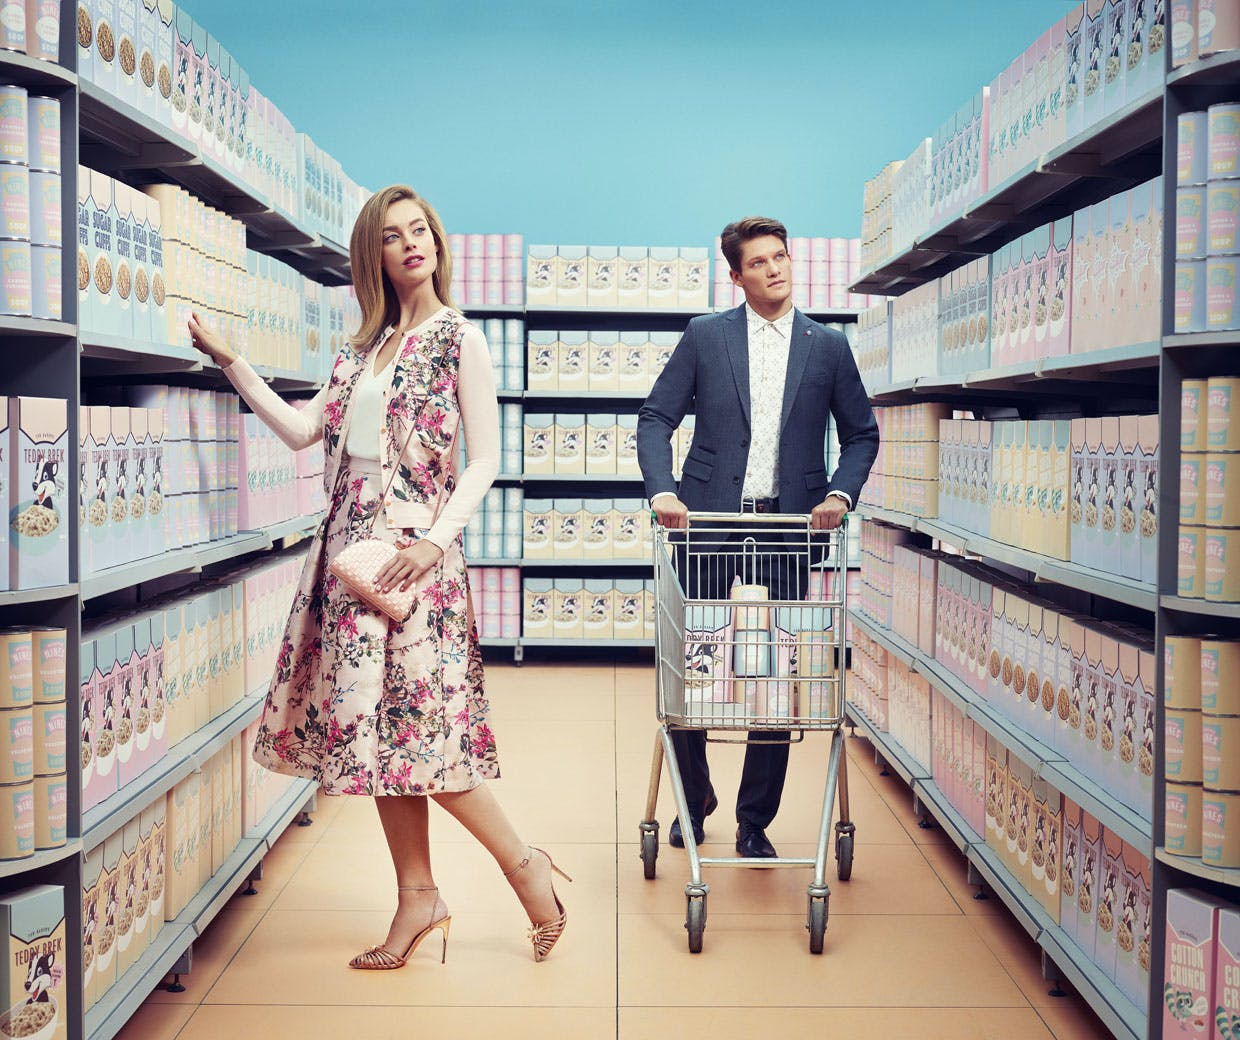 54e0125b6c9c2 Ted Baker uses Instagram for episodic storytelling in  Keeping up with the  Bakers  campaign